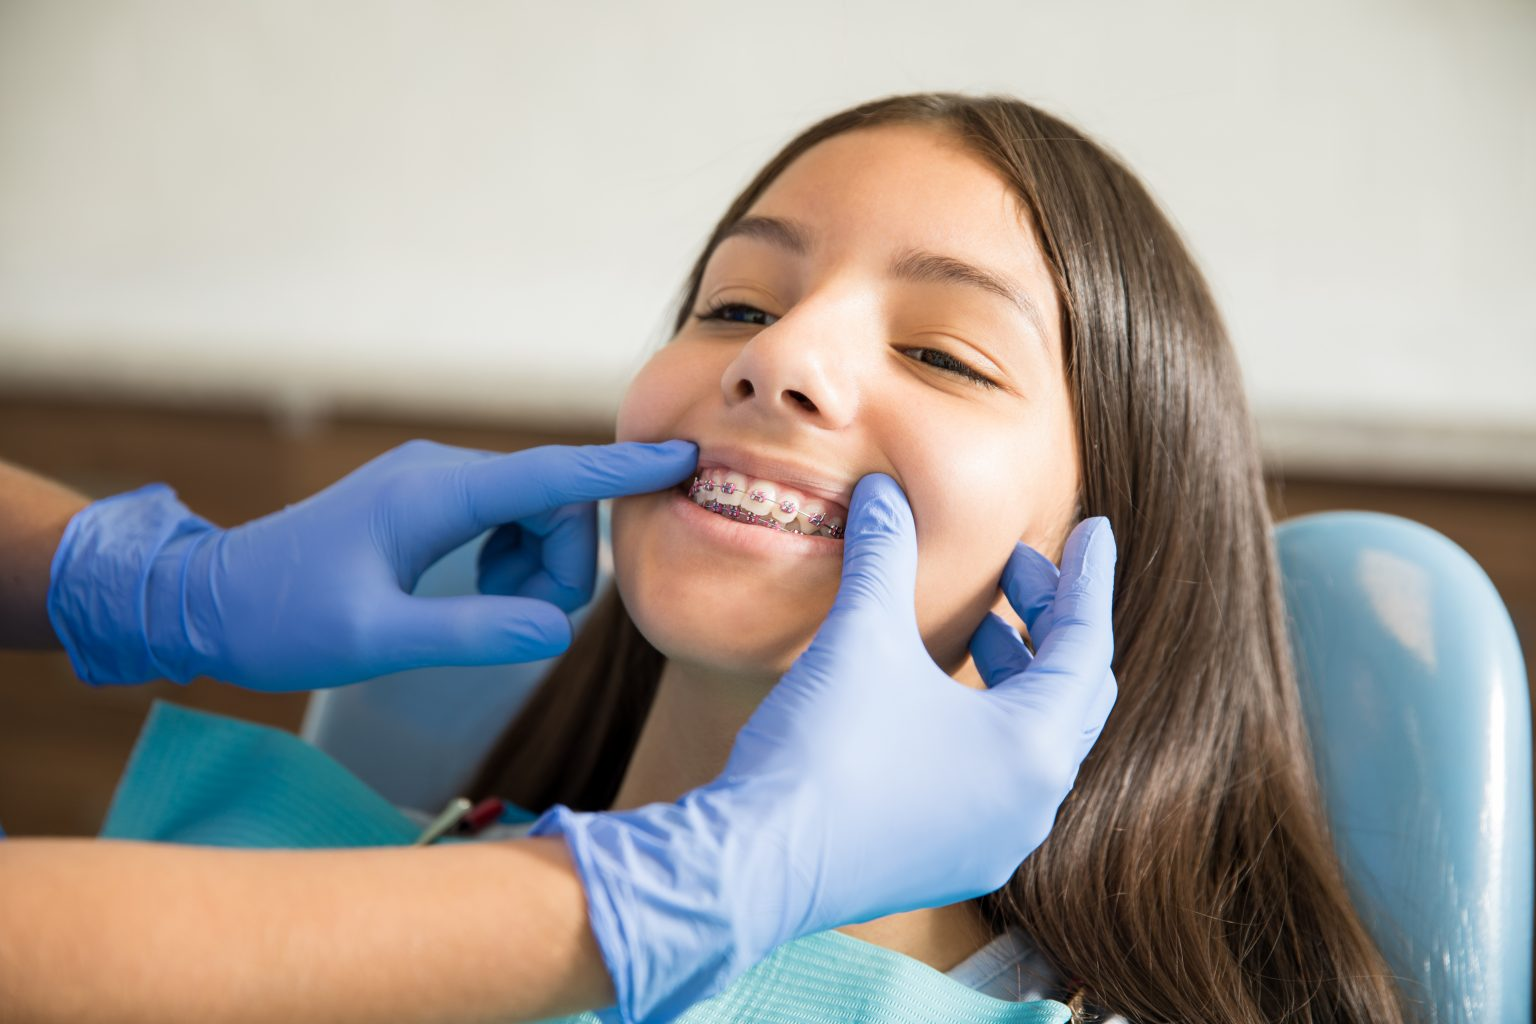 girl with braces being examined by dentist in clinic